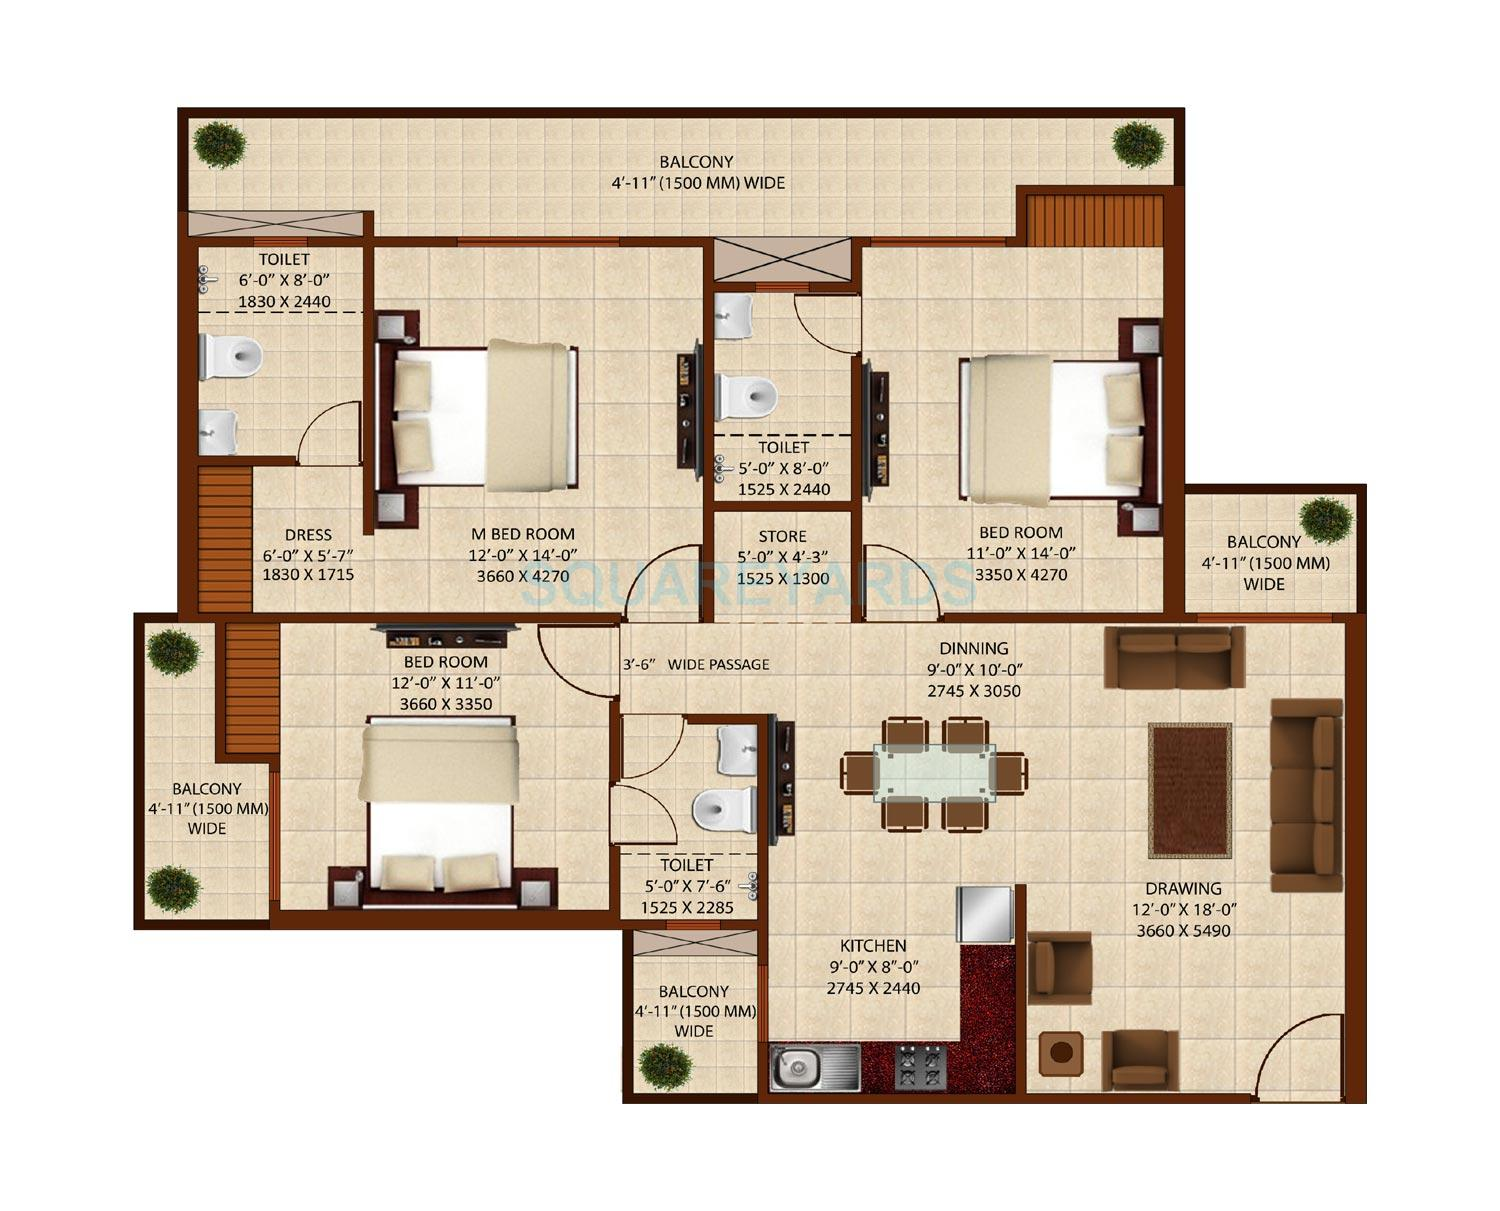 3 BHK 1800 Sq Ft Apartment Floor Plan